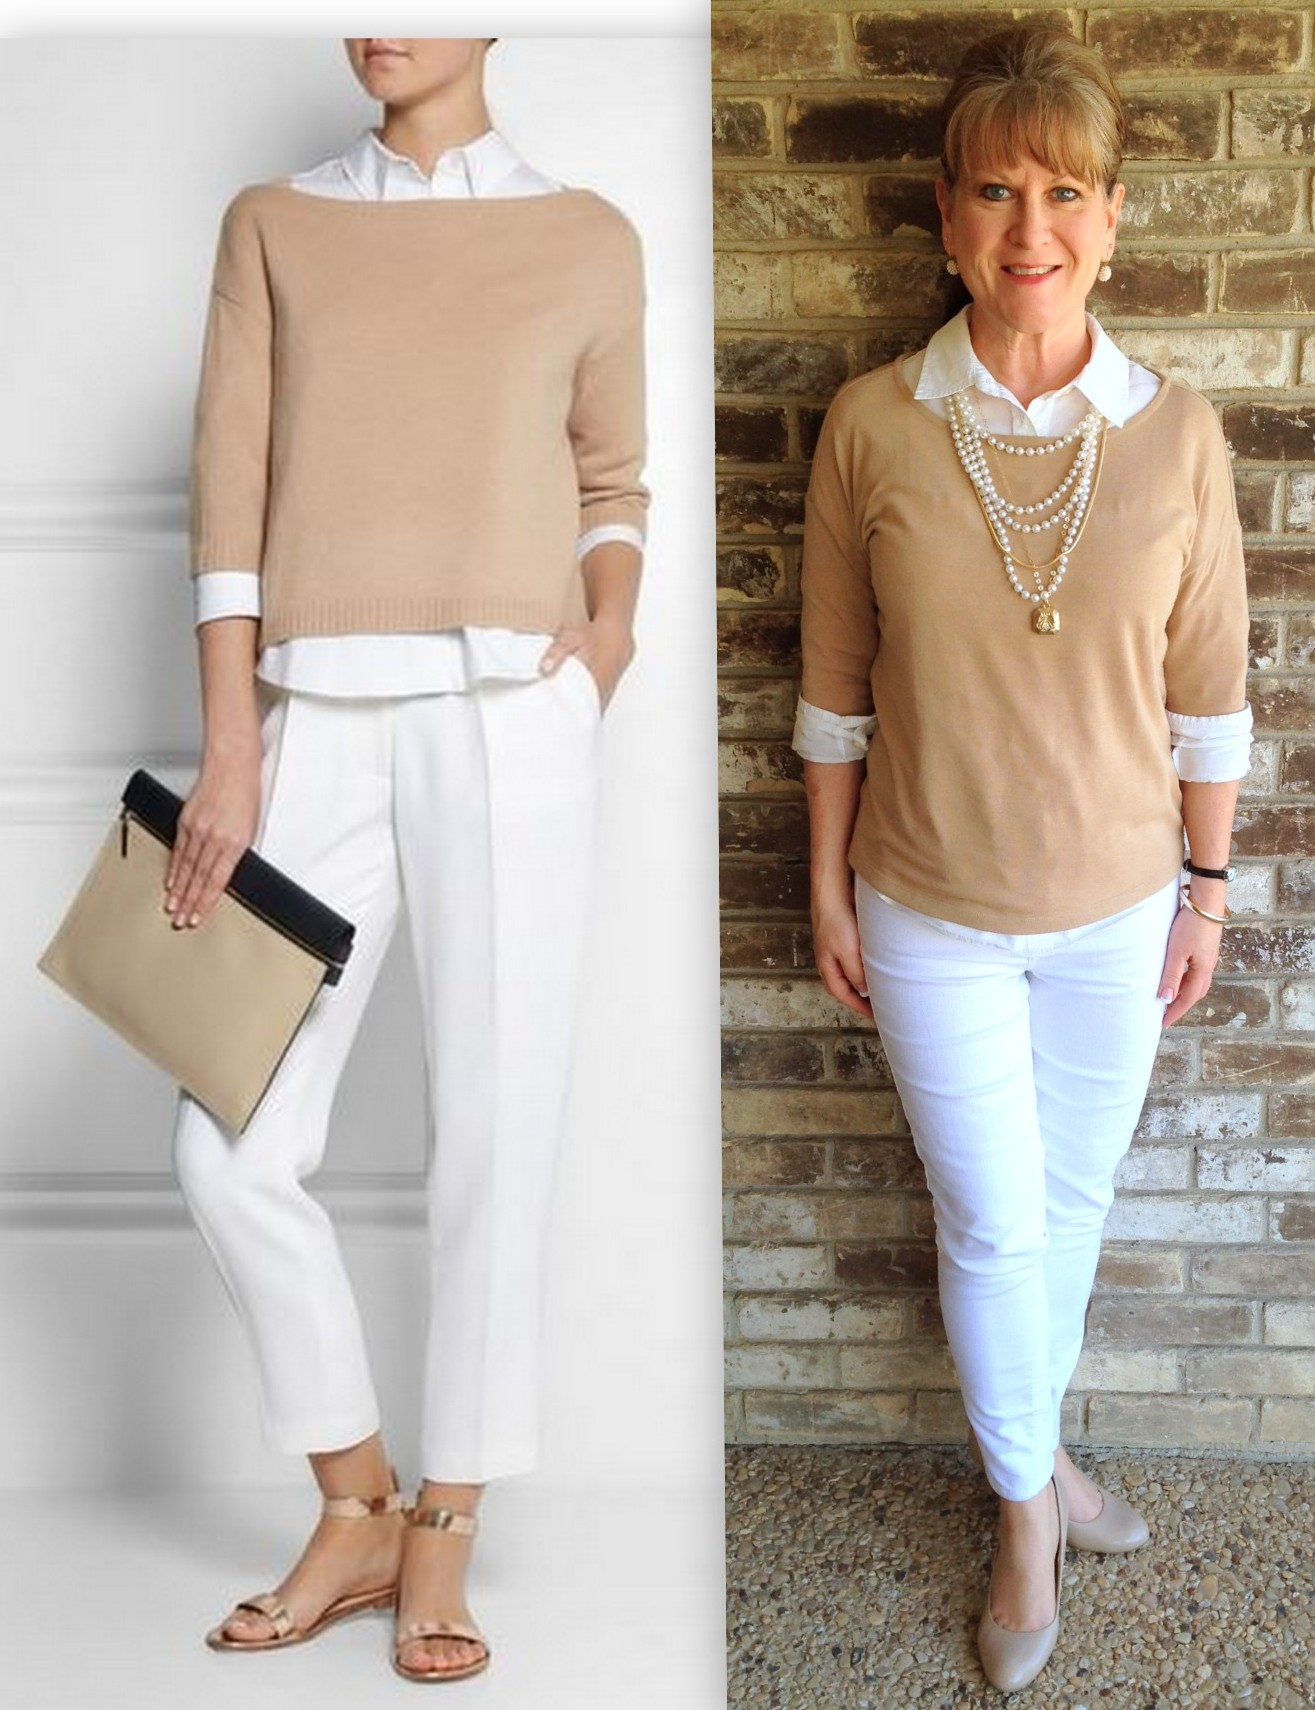 Stylish clothes for women over 50